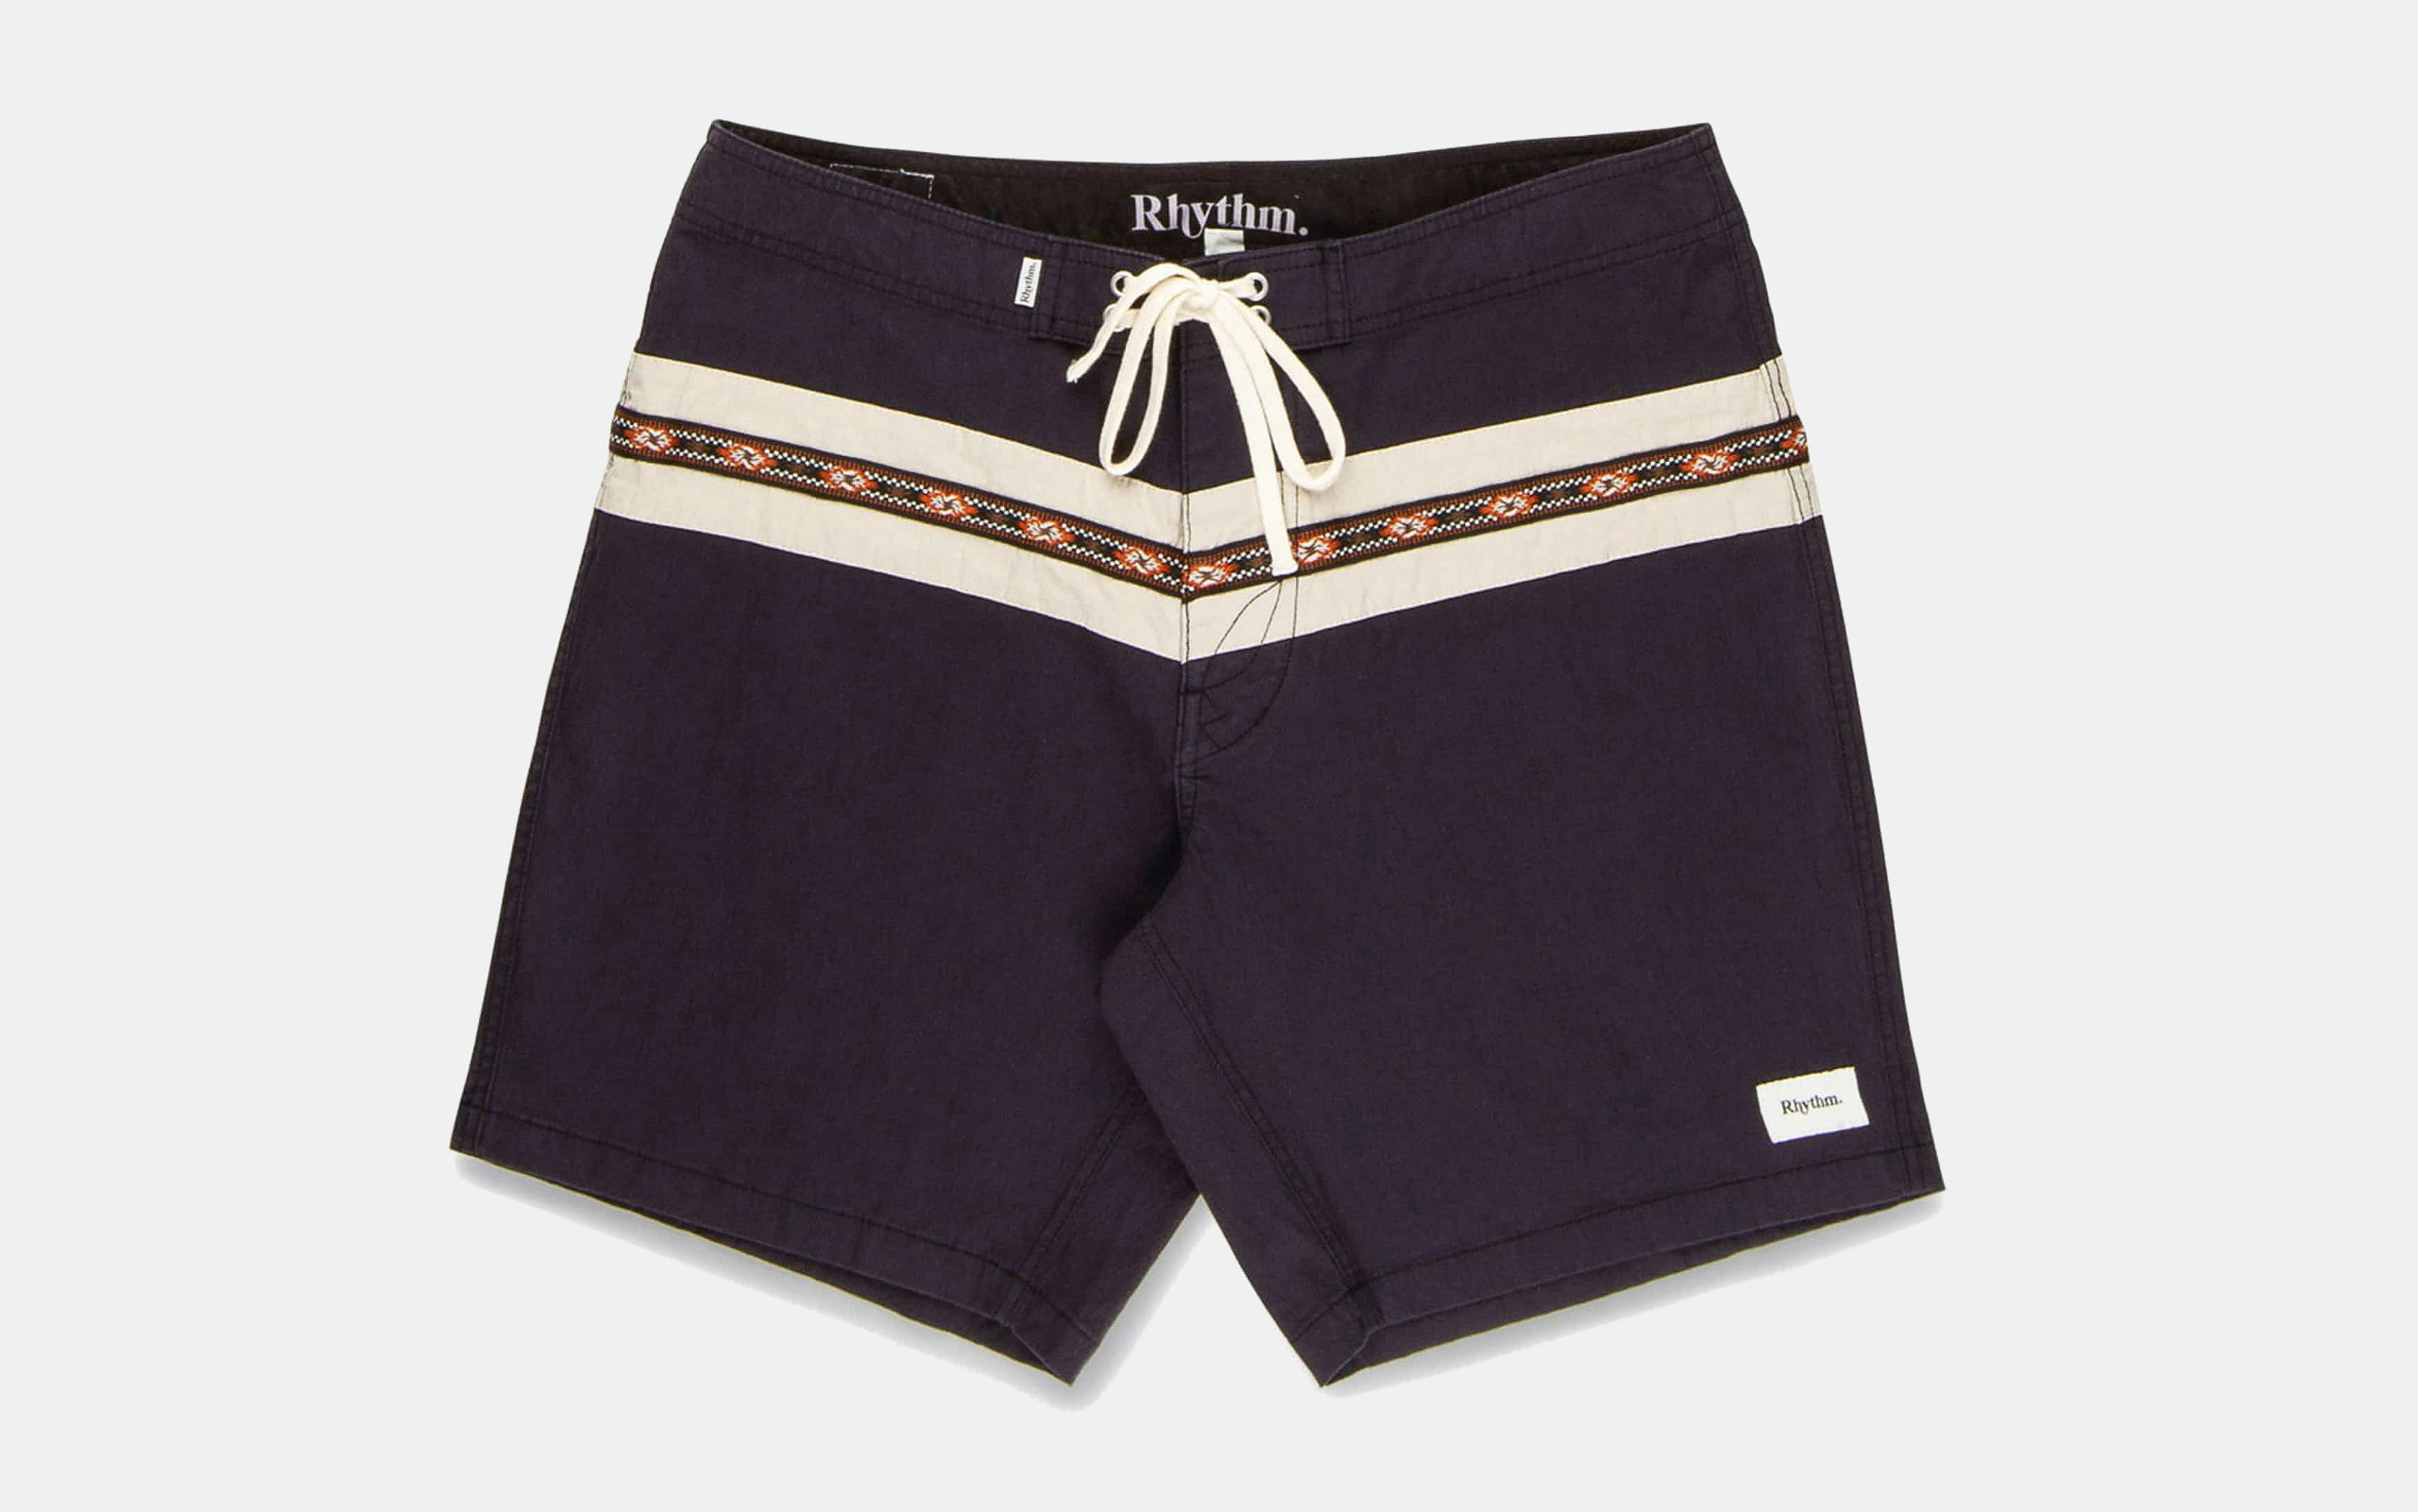 Rhythm Trim Trunks